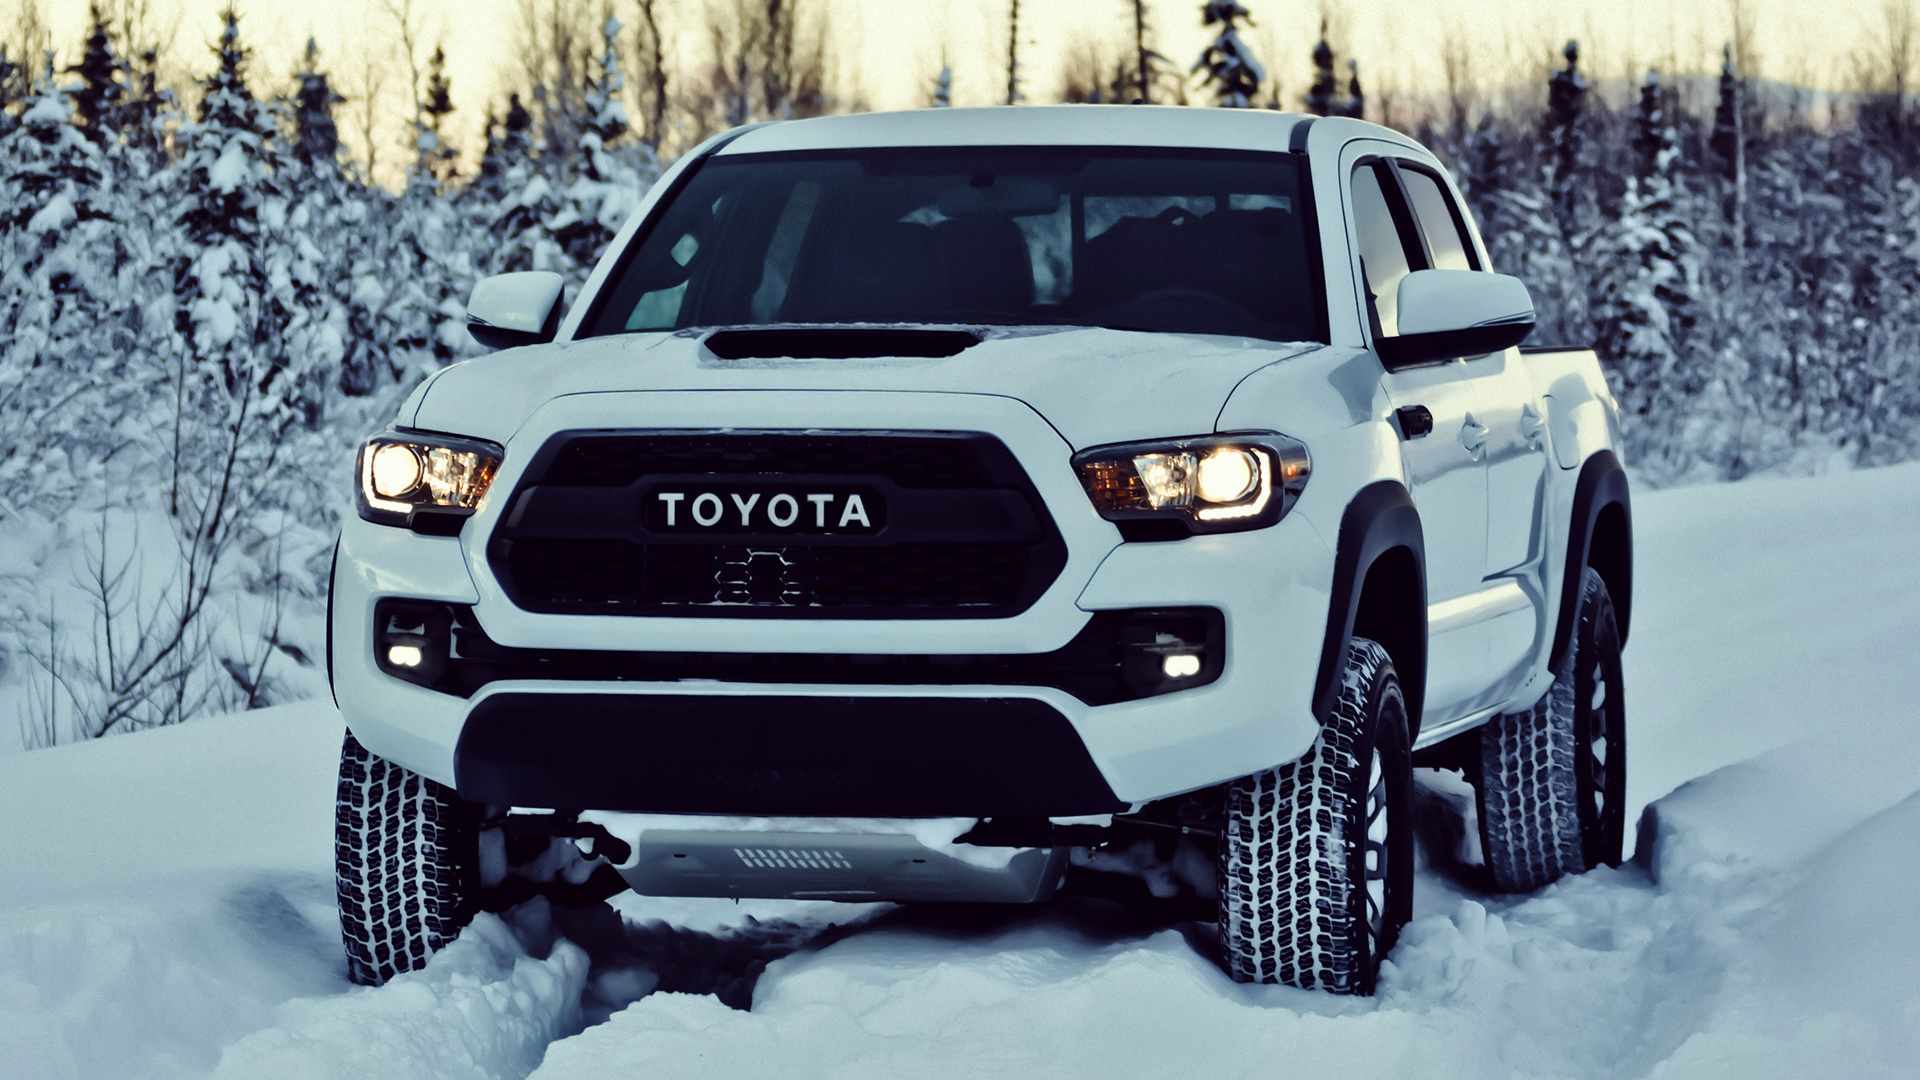 Toyota Tacoma Trd Pro Double Cab 2017 Wallpapers And Hd